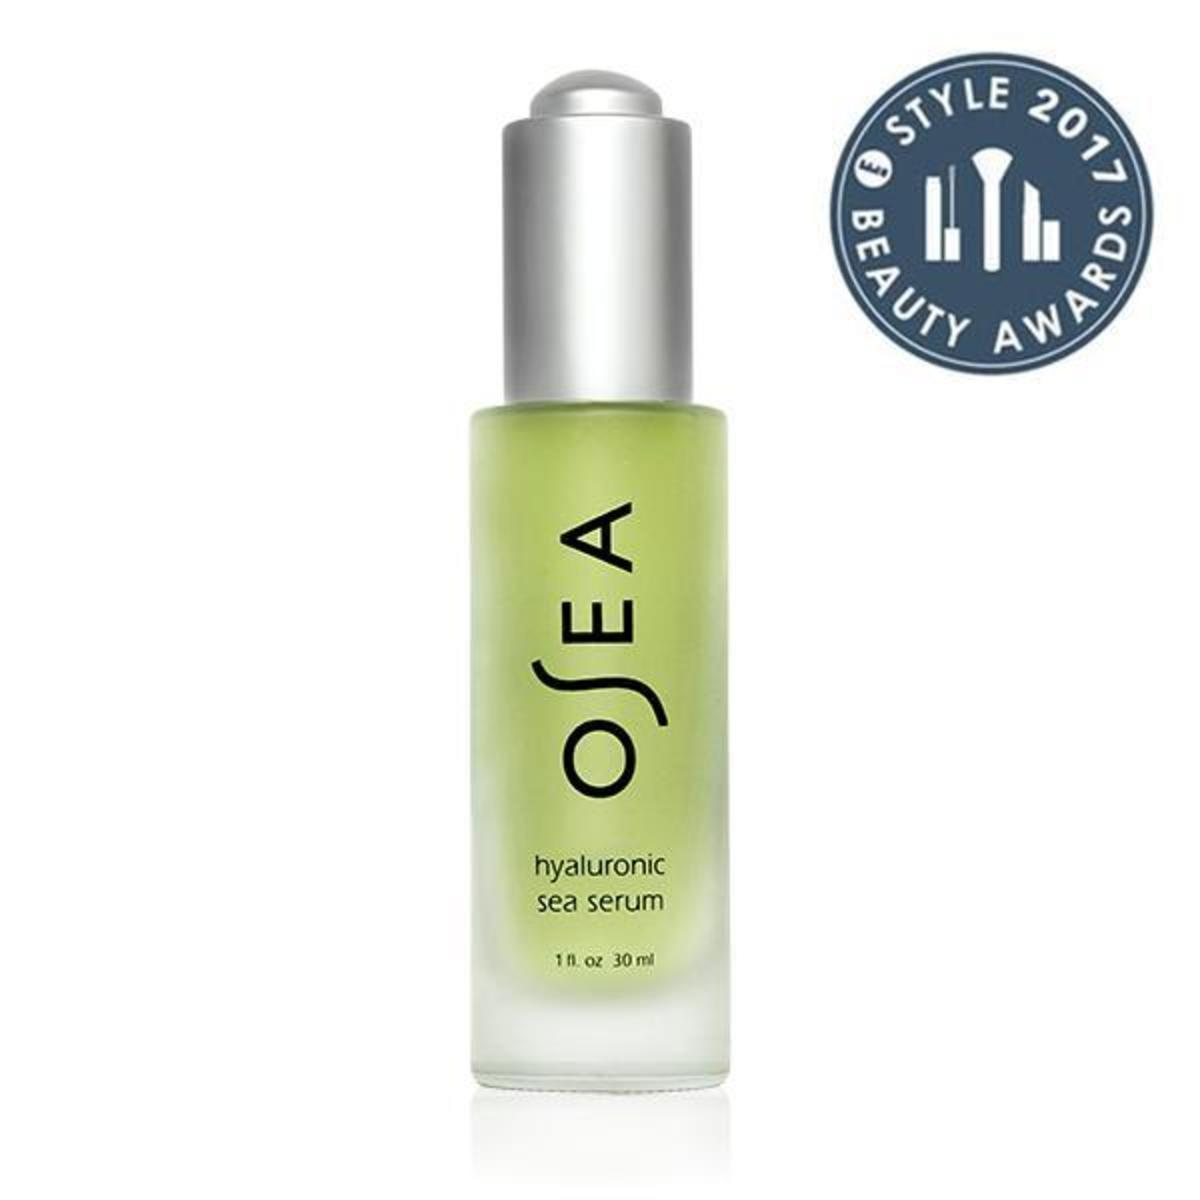 OSEA-hyaluronic-sea-serum-award-r